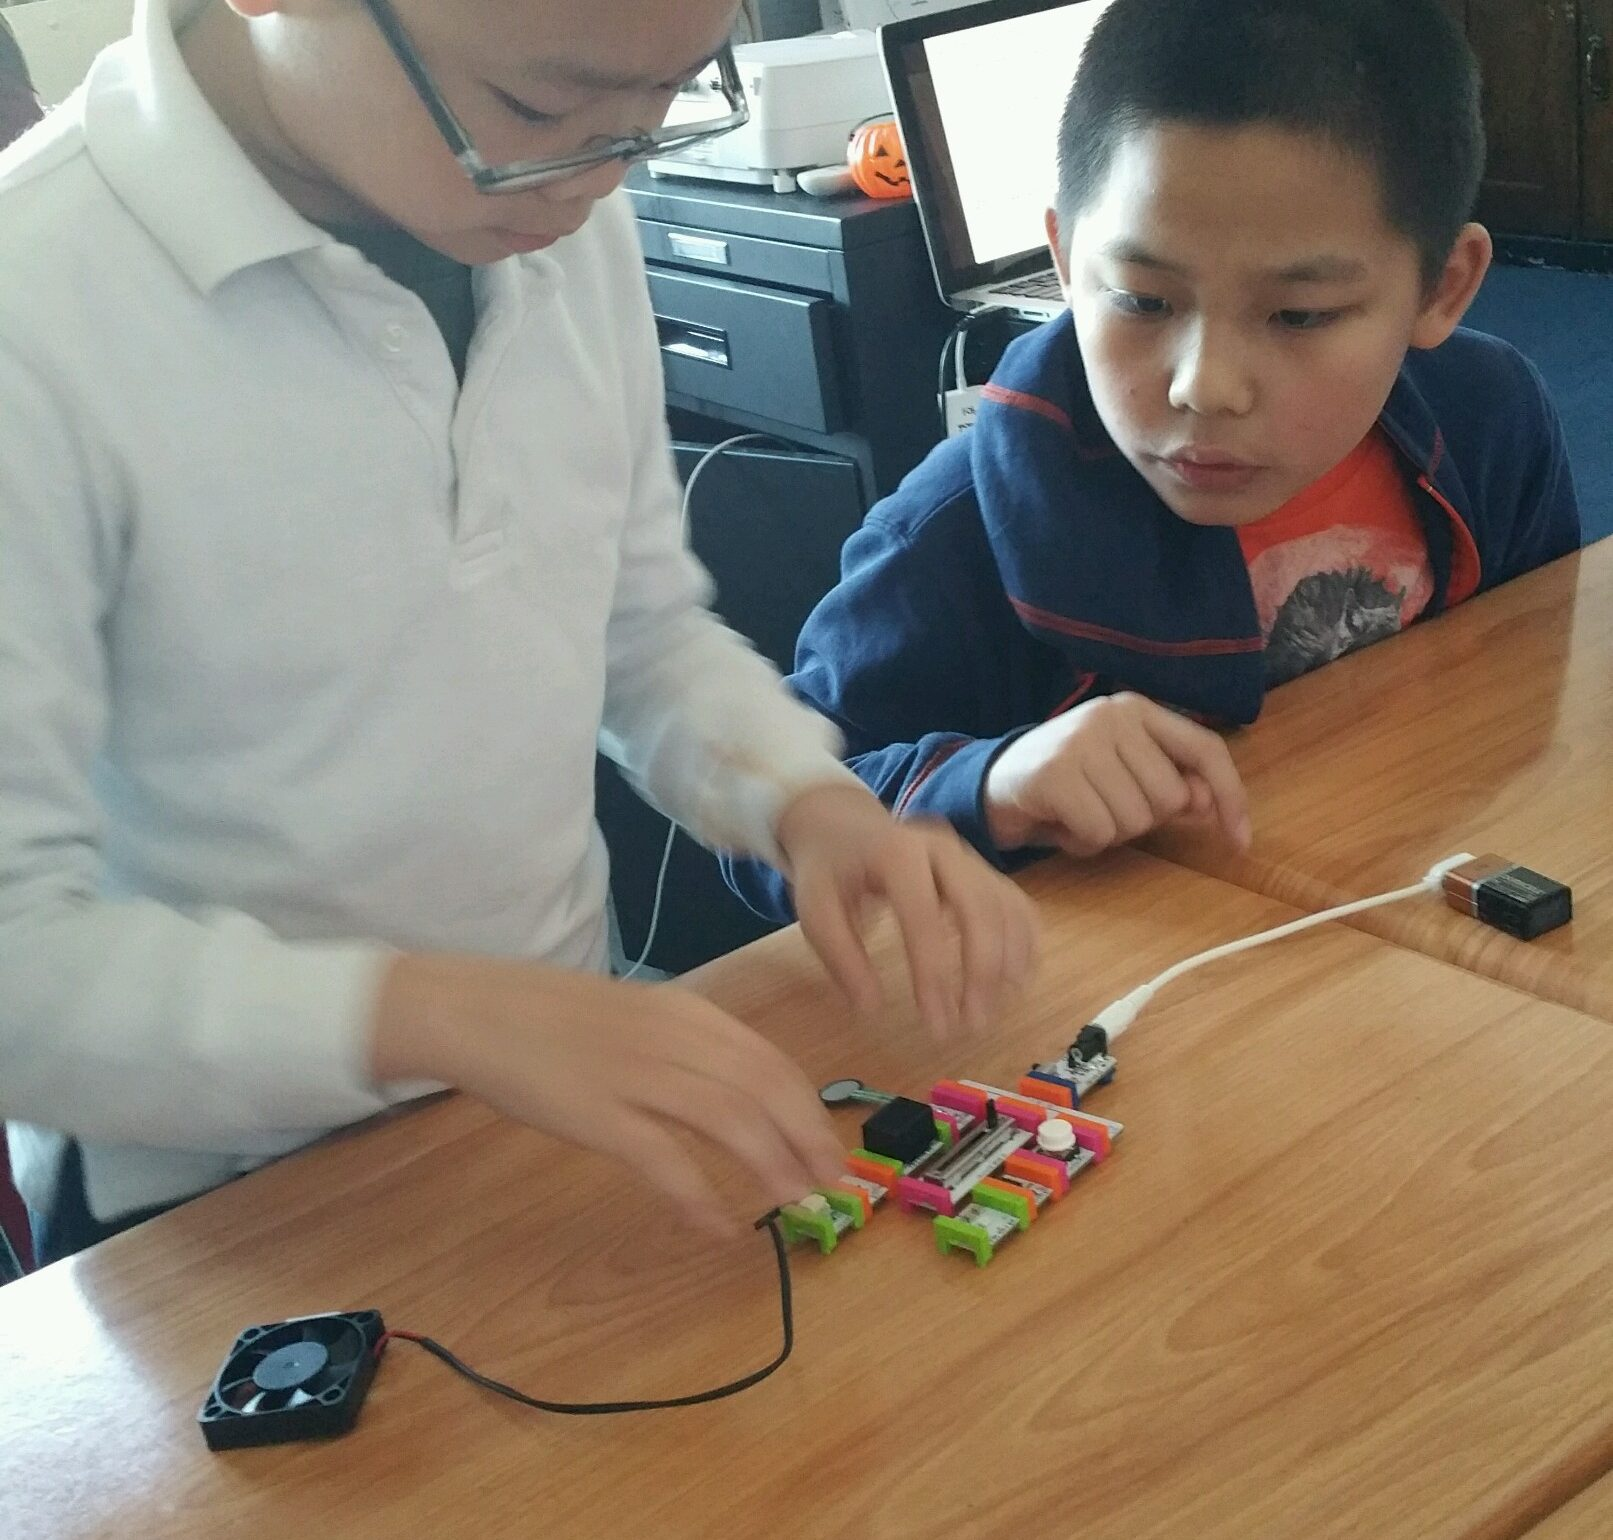 students creating with littlebits